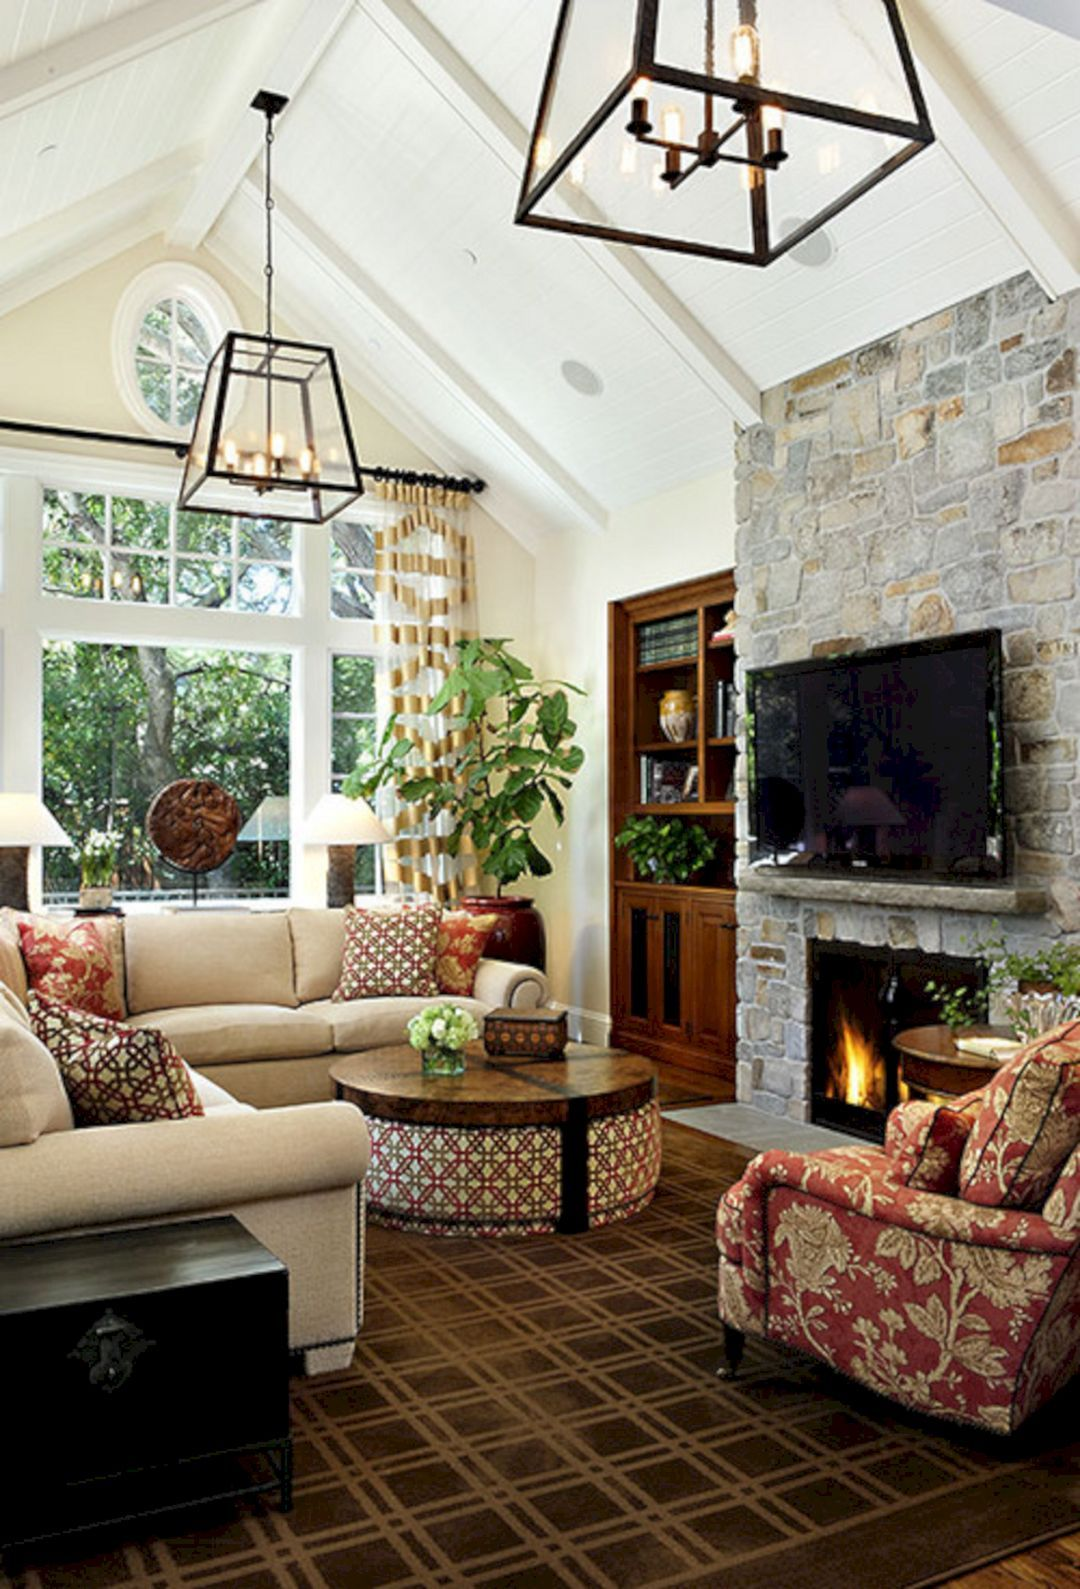 35 Awesome Small Keeping Room Design And Decor With Firep